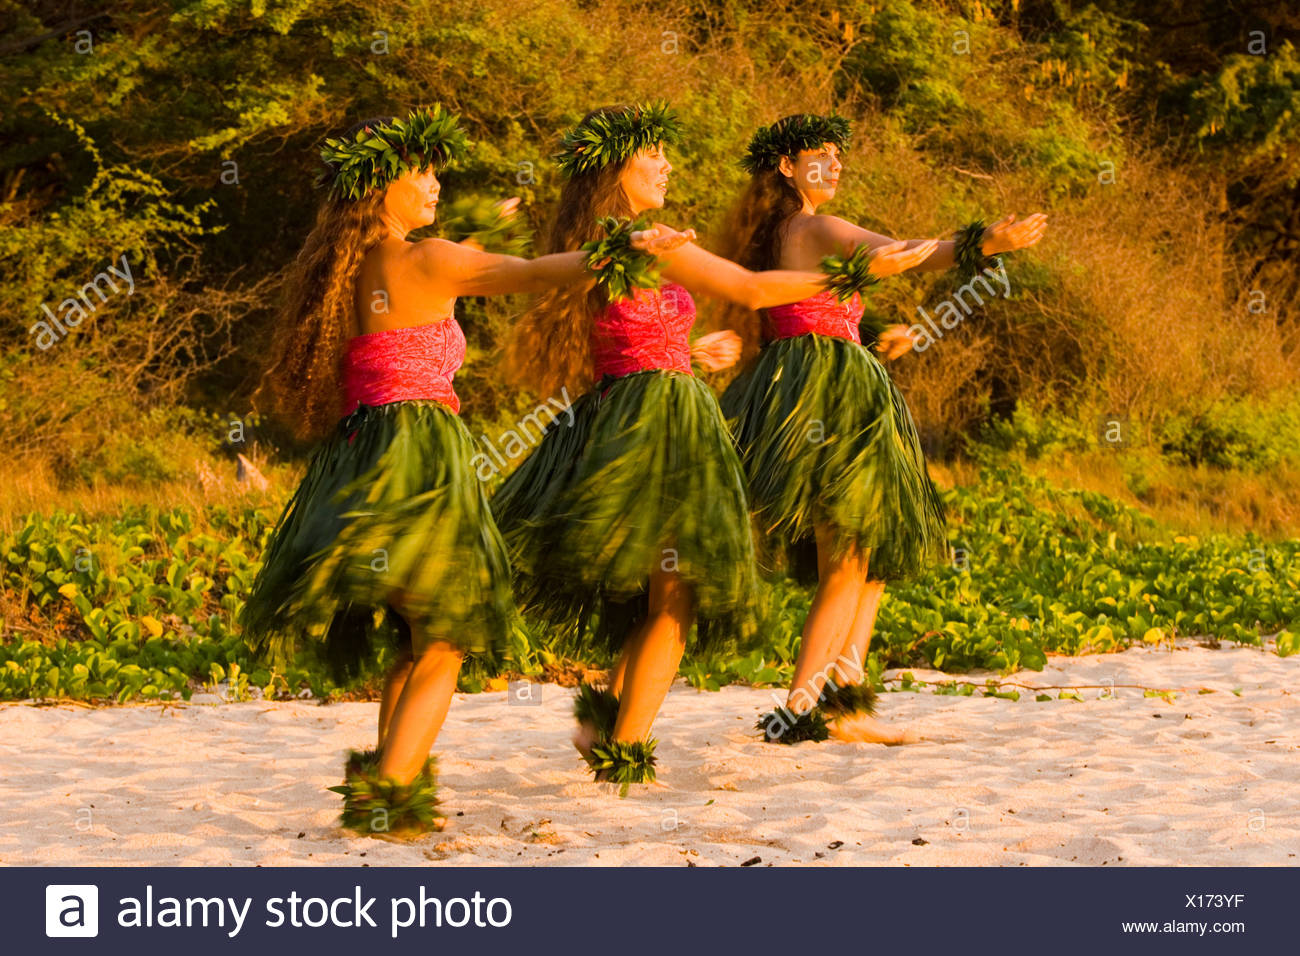 Three hula dancers in ti leaf skirts dance on the beach at sunset at Makena, Maui. - Stock Image